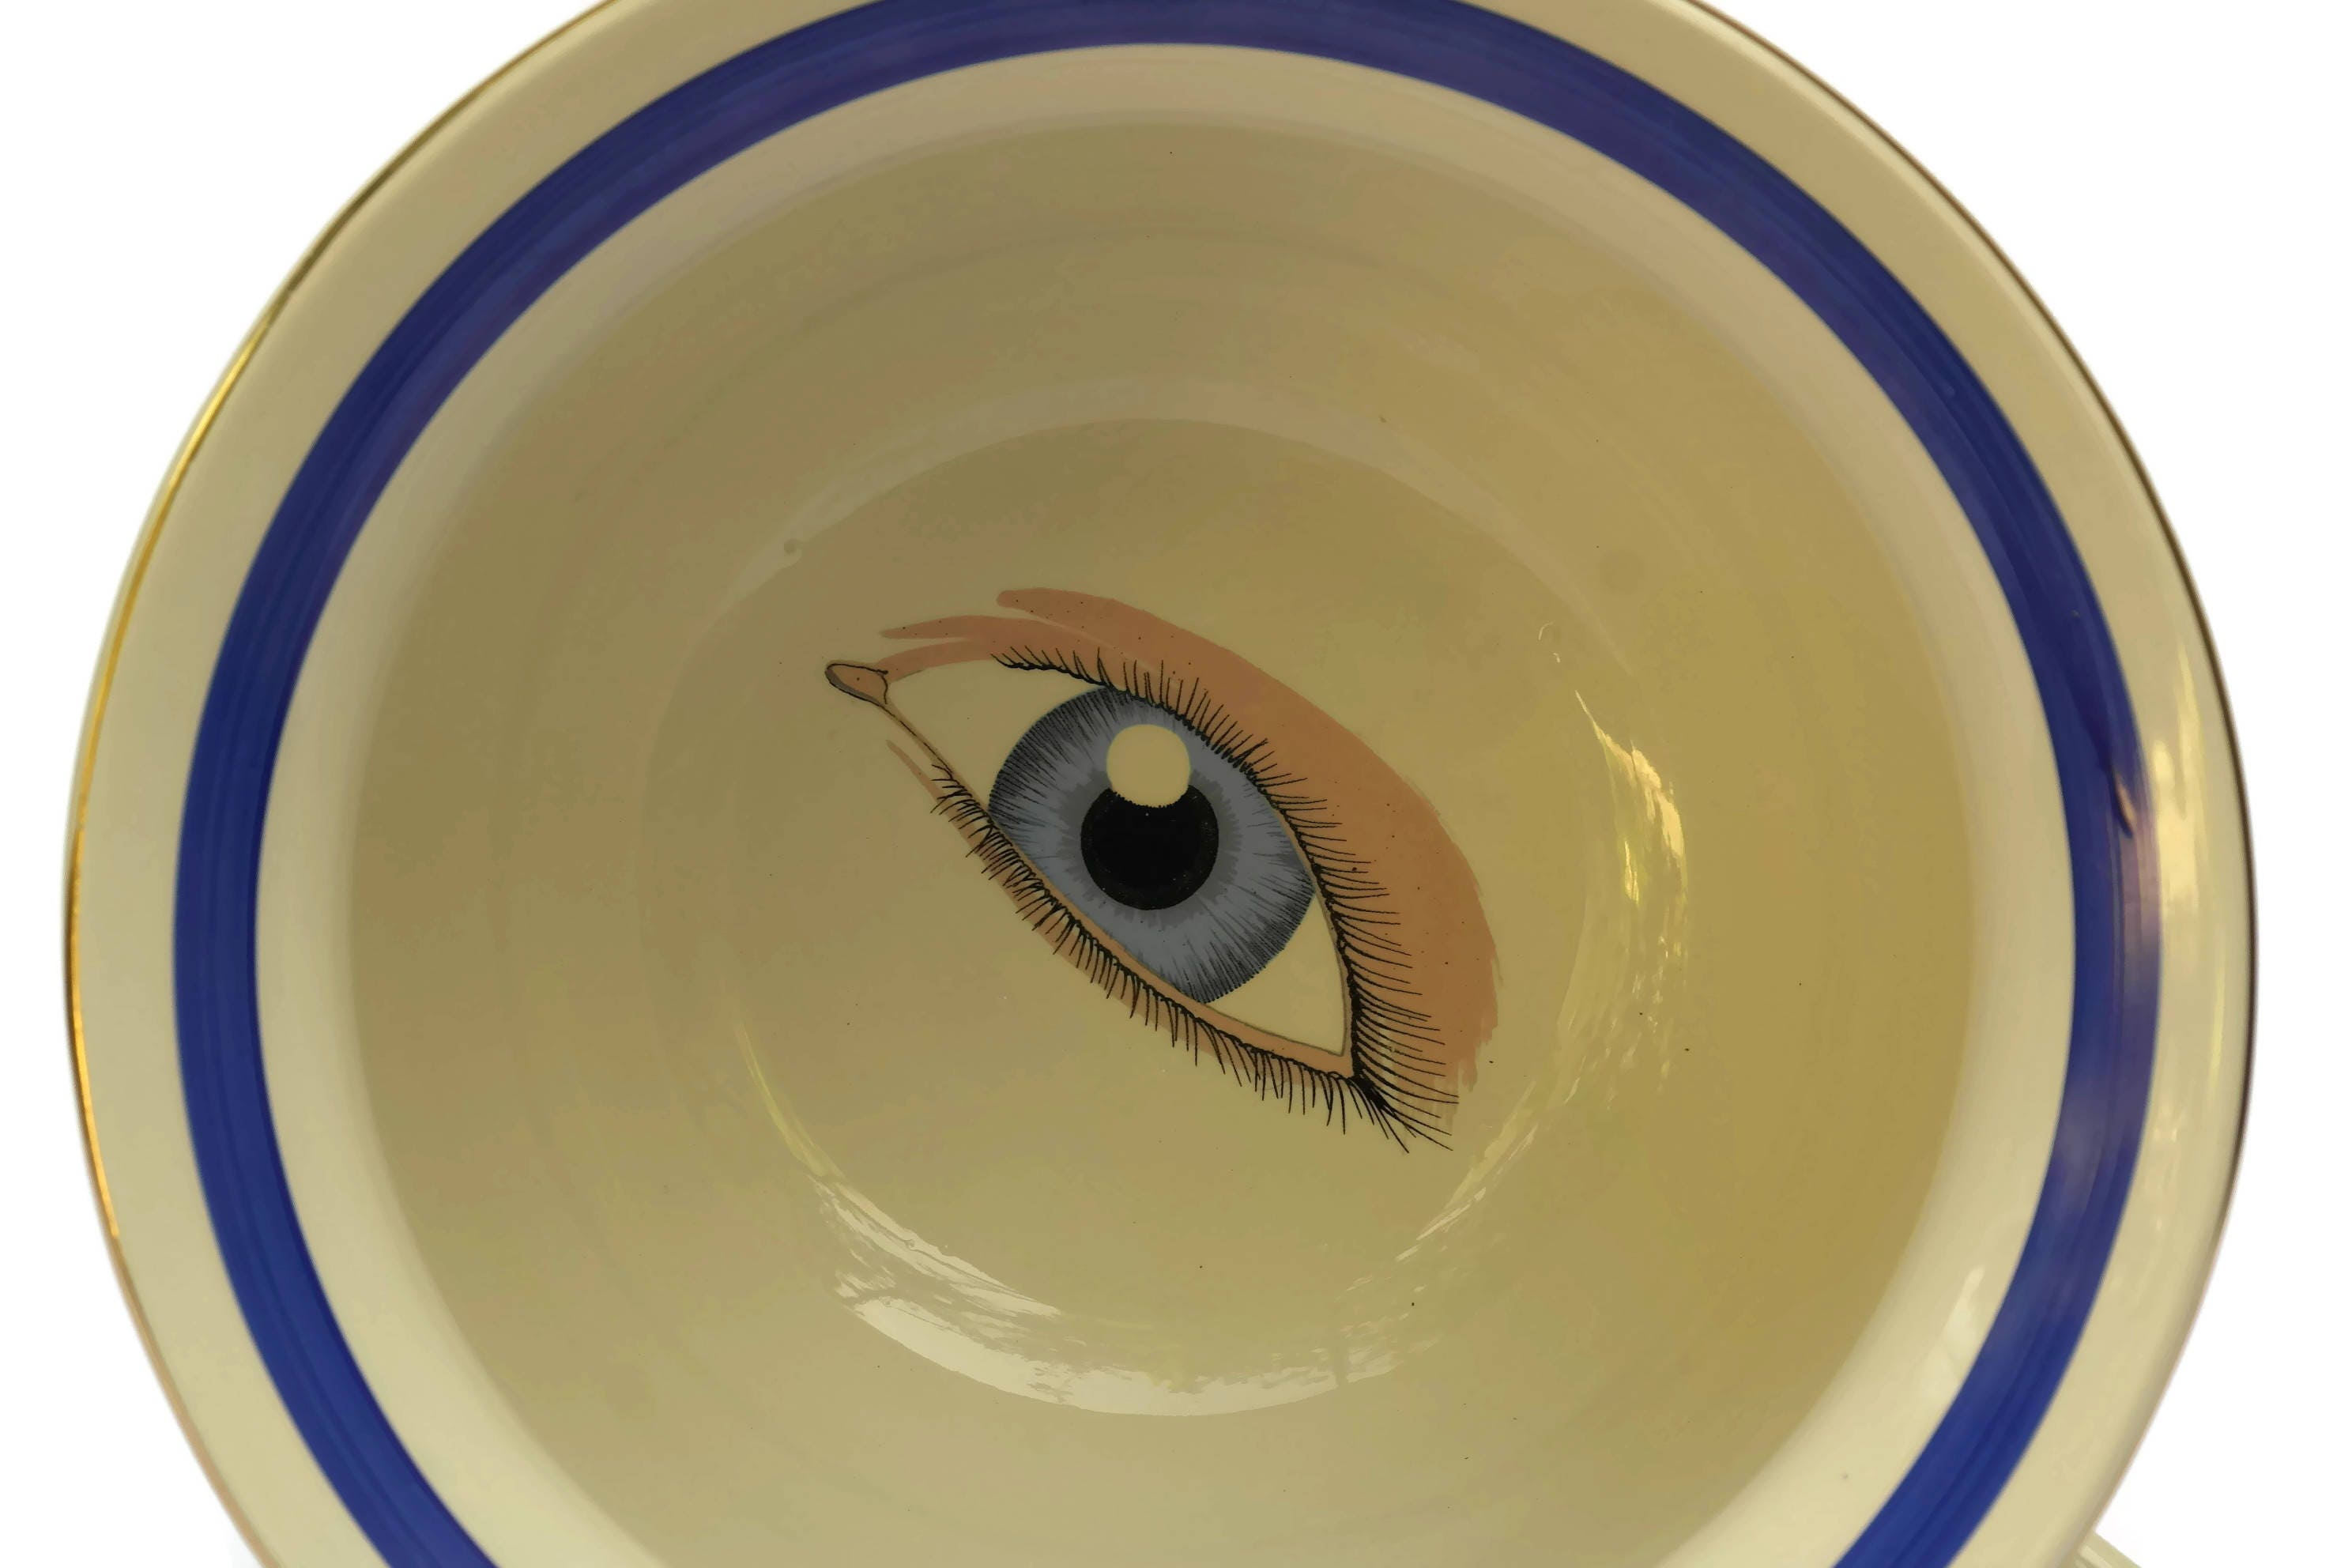 Vintage French Porcelain Chamber Pot With Peeping Eye Traditional